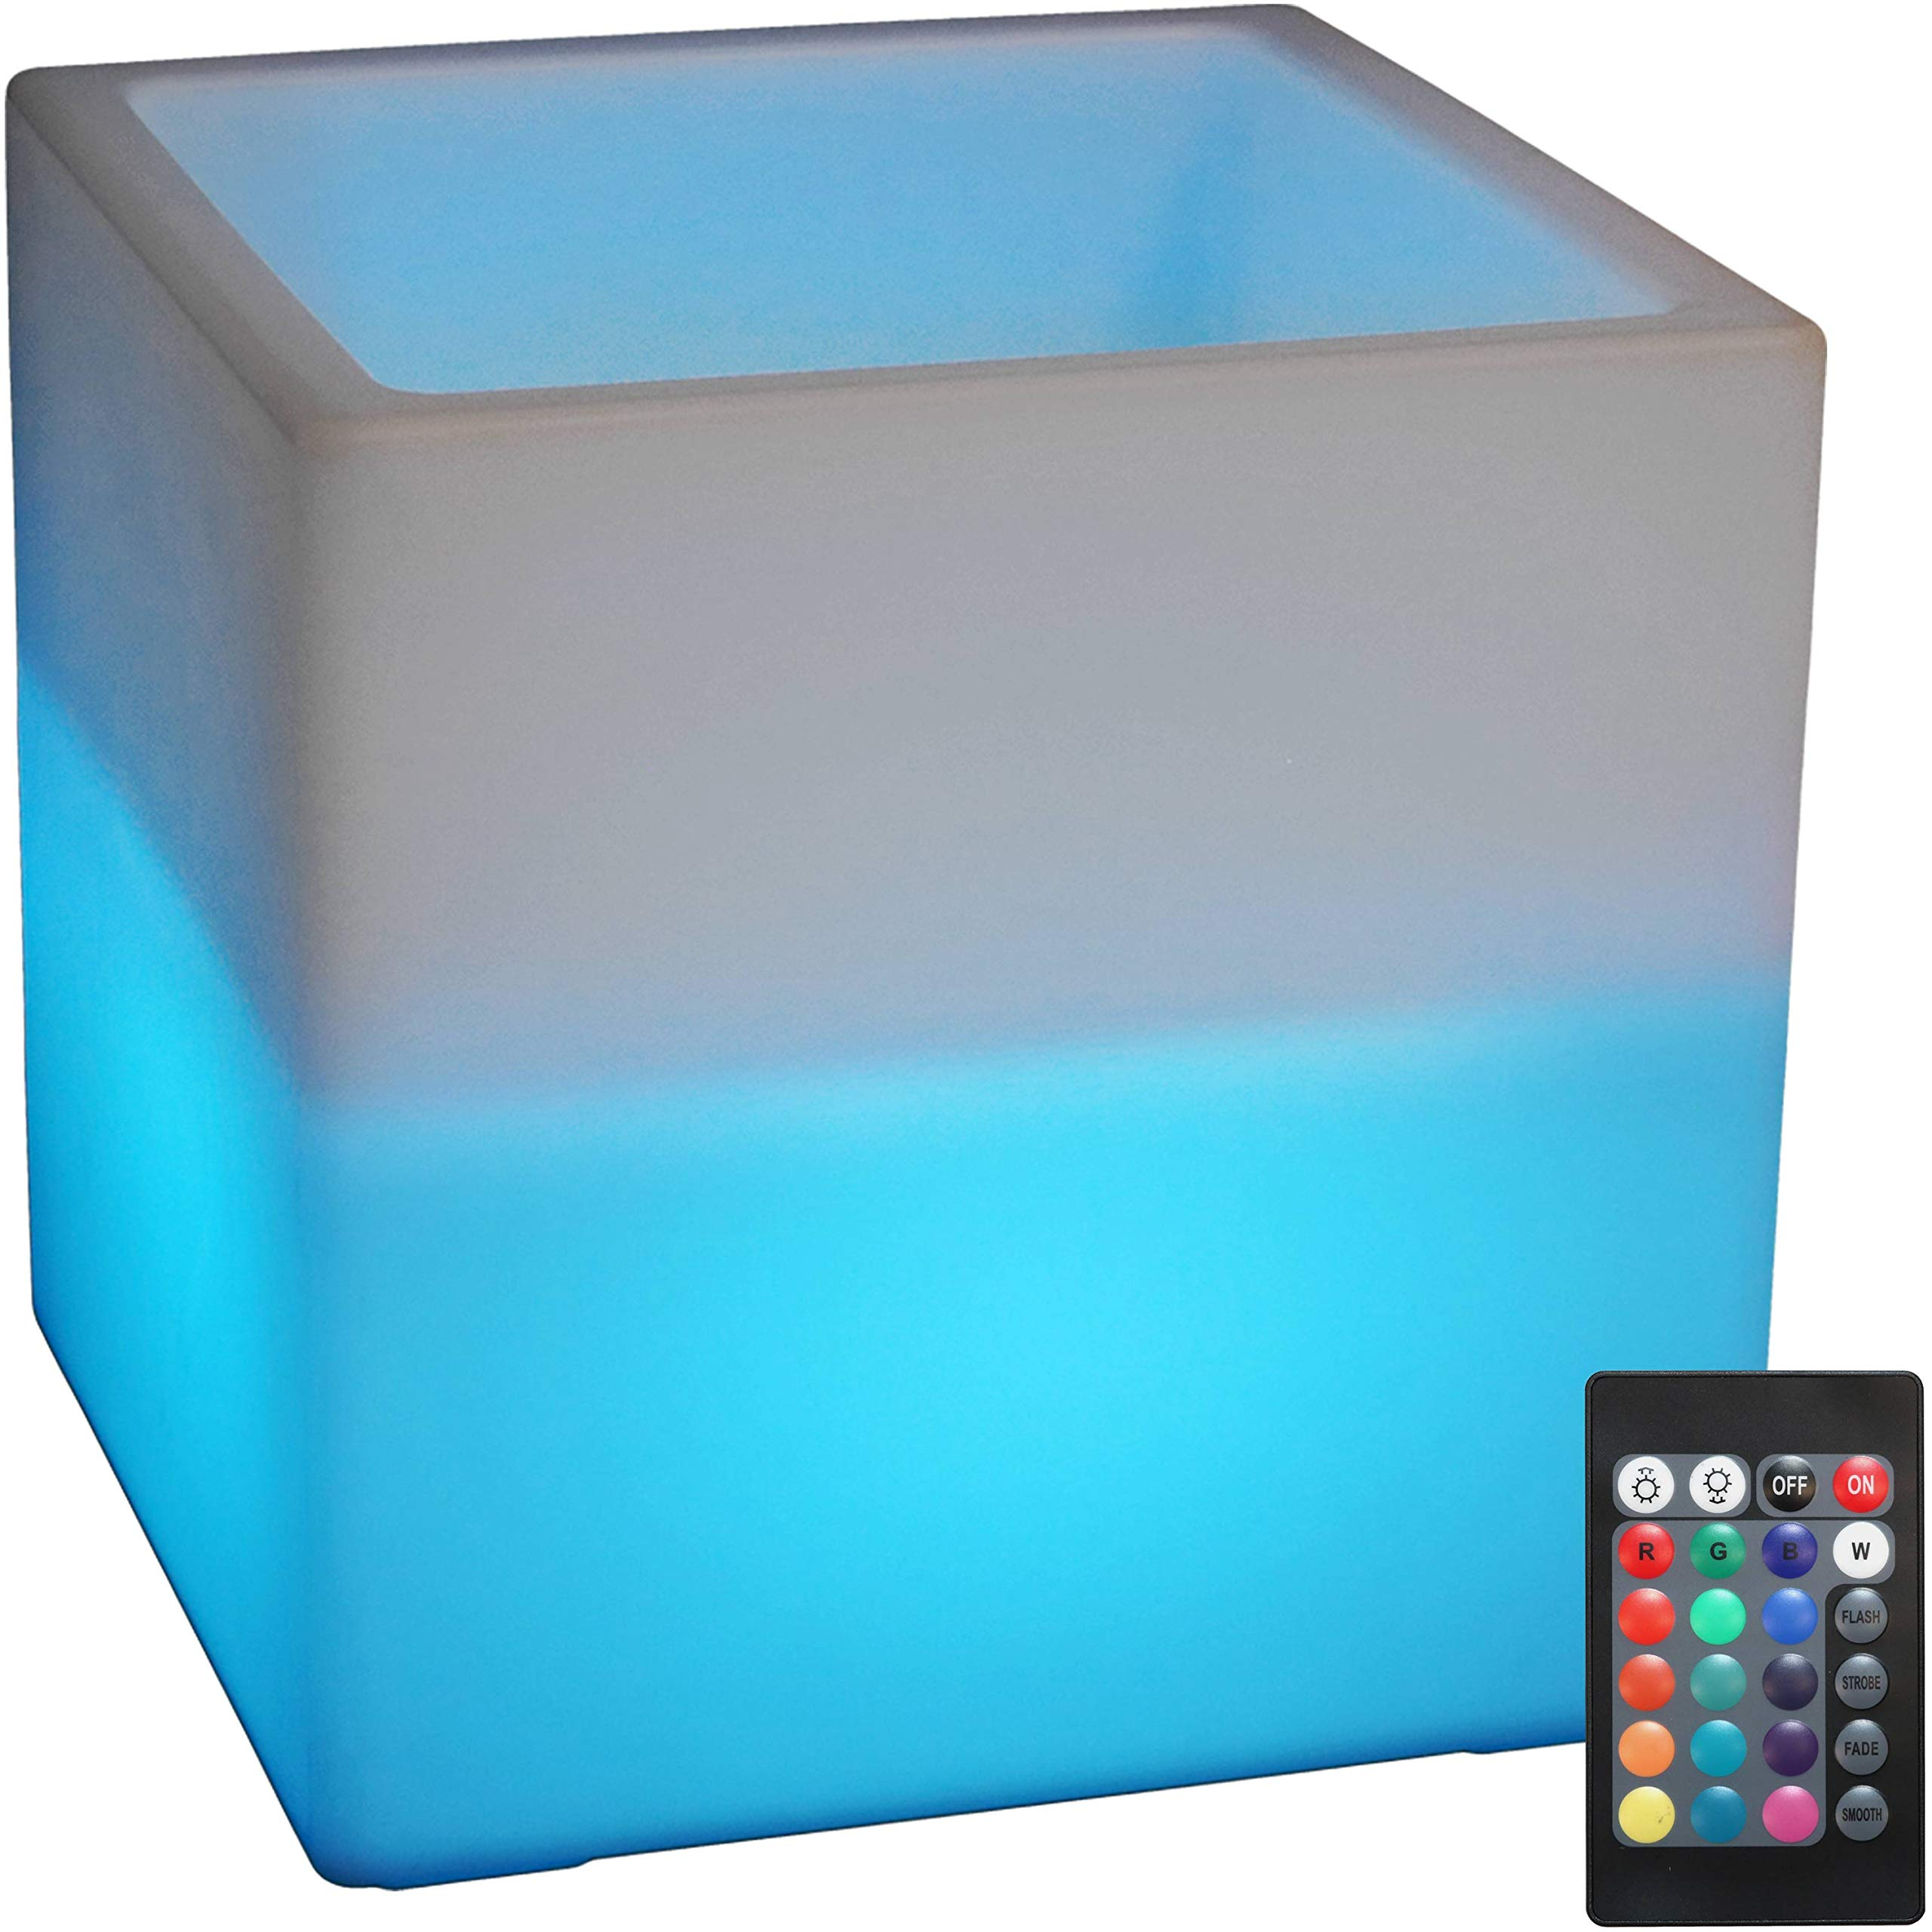 Sunnydaze Indoor/Outdoor LED Ice Bucket with Remote Control, Rechargeable Battery, RGB Color-Changing, 16-Inch Cube